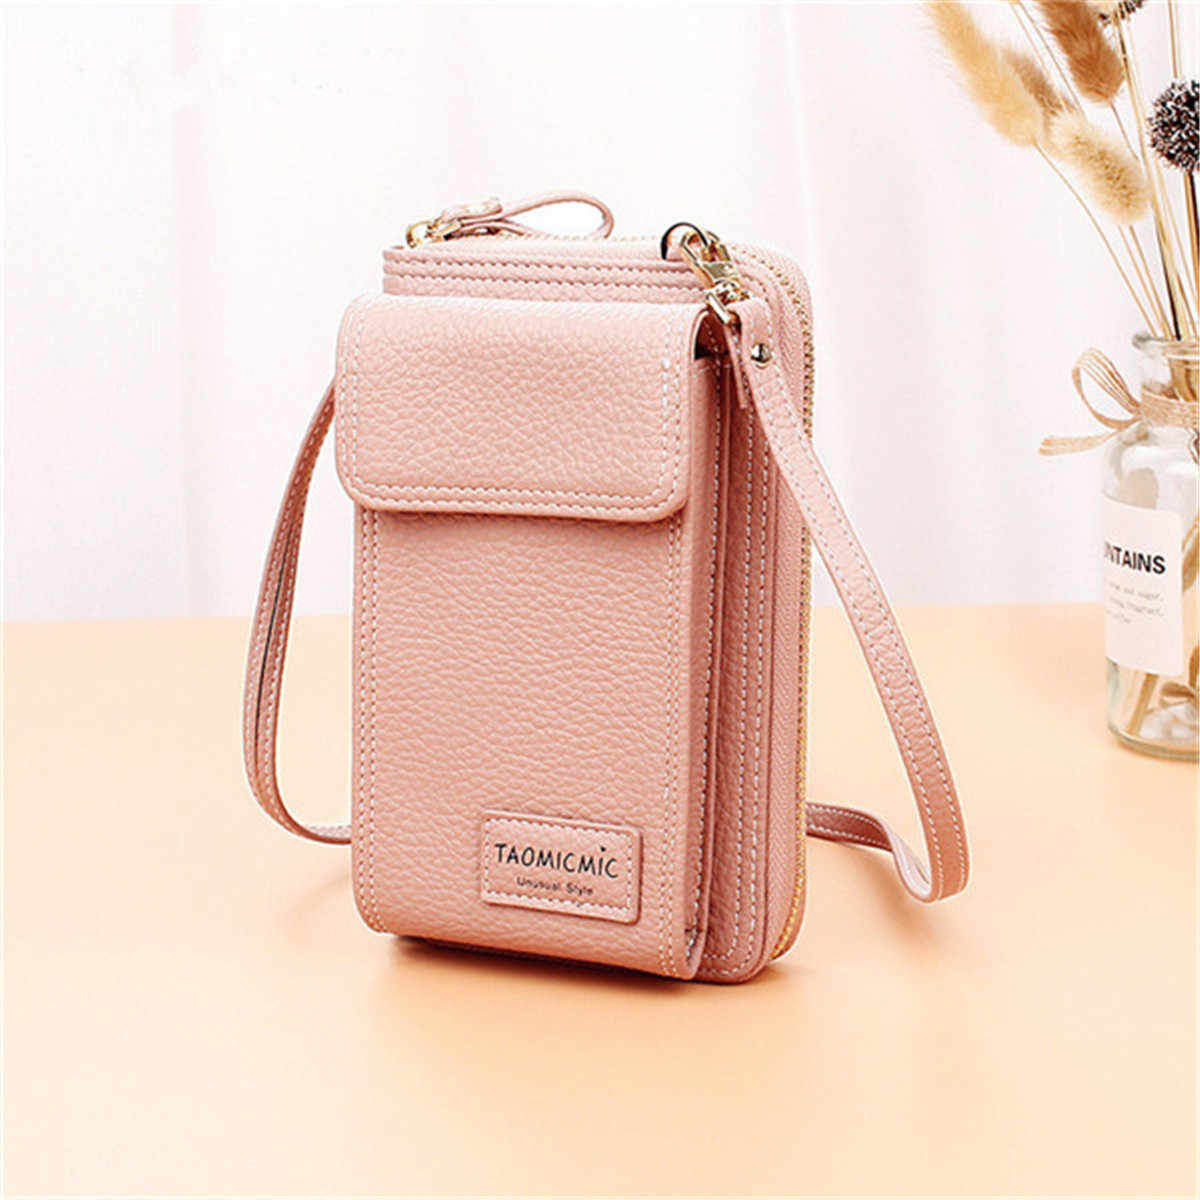 Ladies Solid Faux leather Clutch Bag Small Crossbody Bag For women Purses 4 Card Slot Card Bag Pink Green Mini Phone Bag